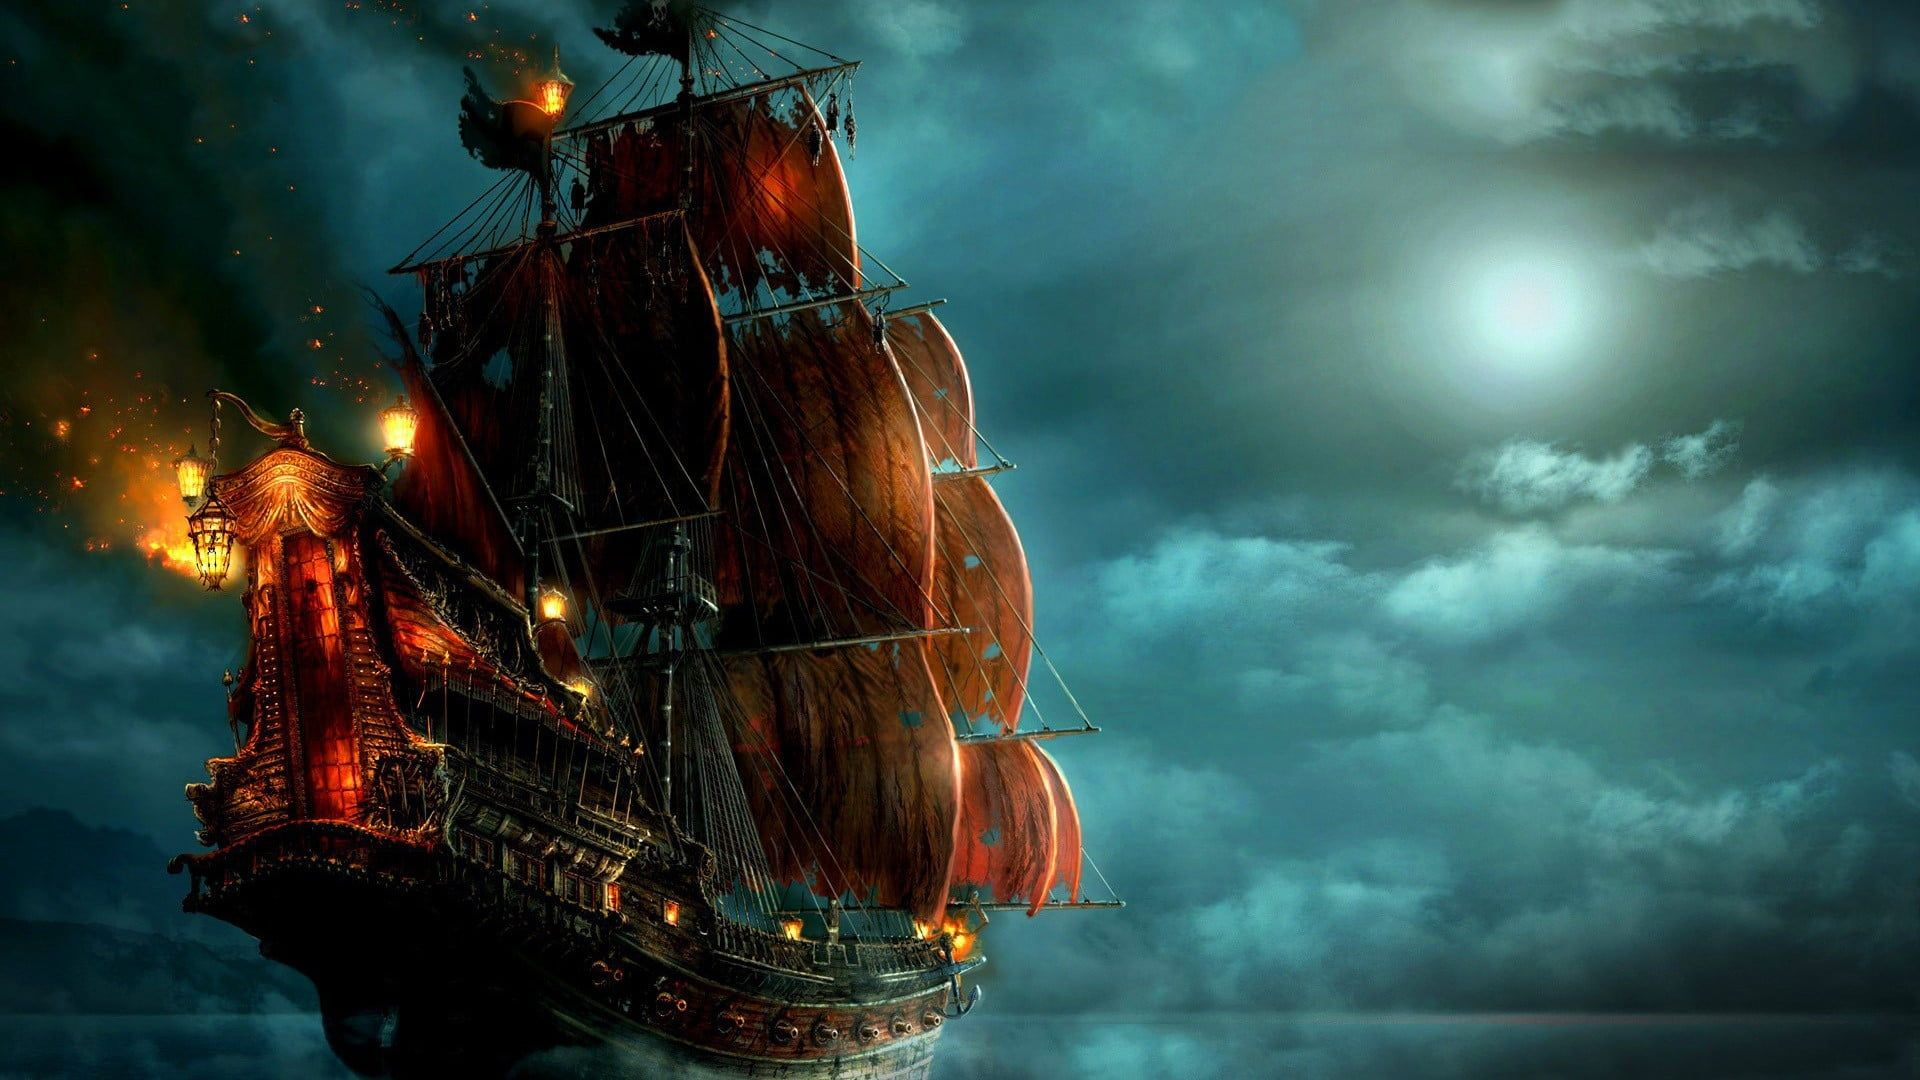 Black And Red Pirate Ship Illustration Pirates Ship Night